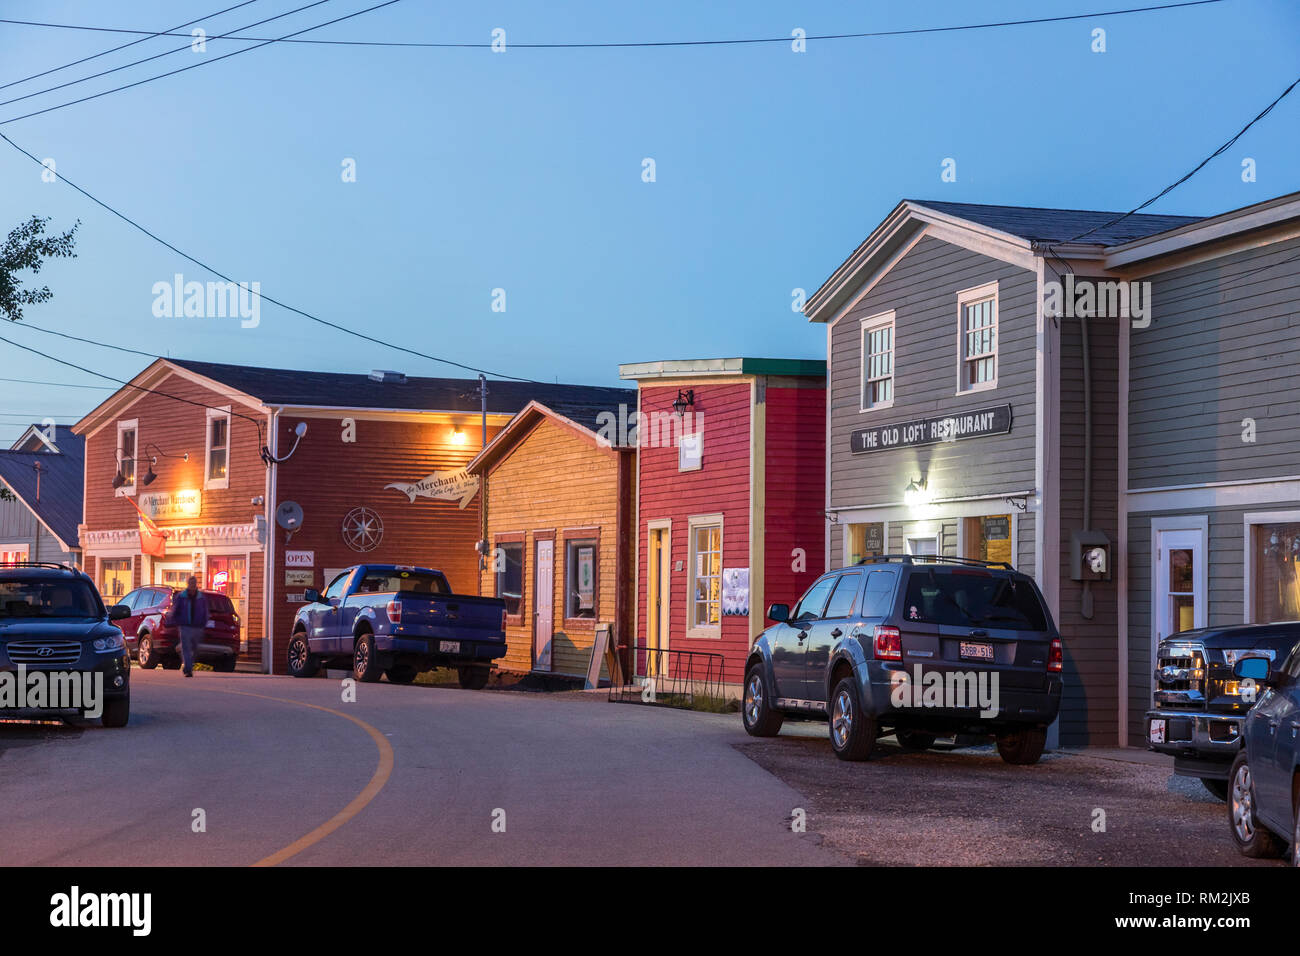 Night Life in Woody Point, in Gros Morse National Park at dusk. - Stock Image